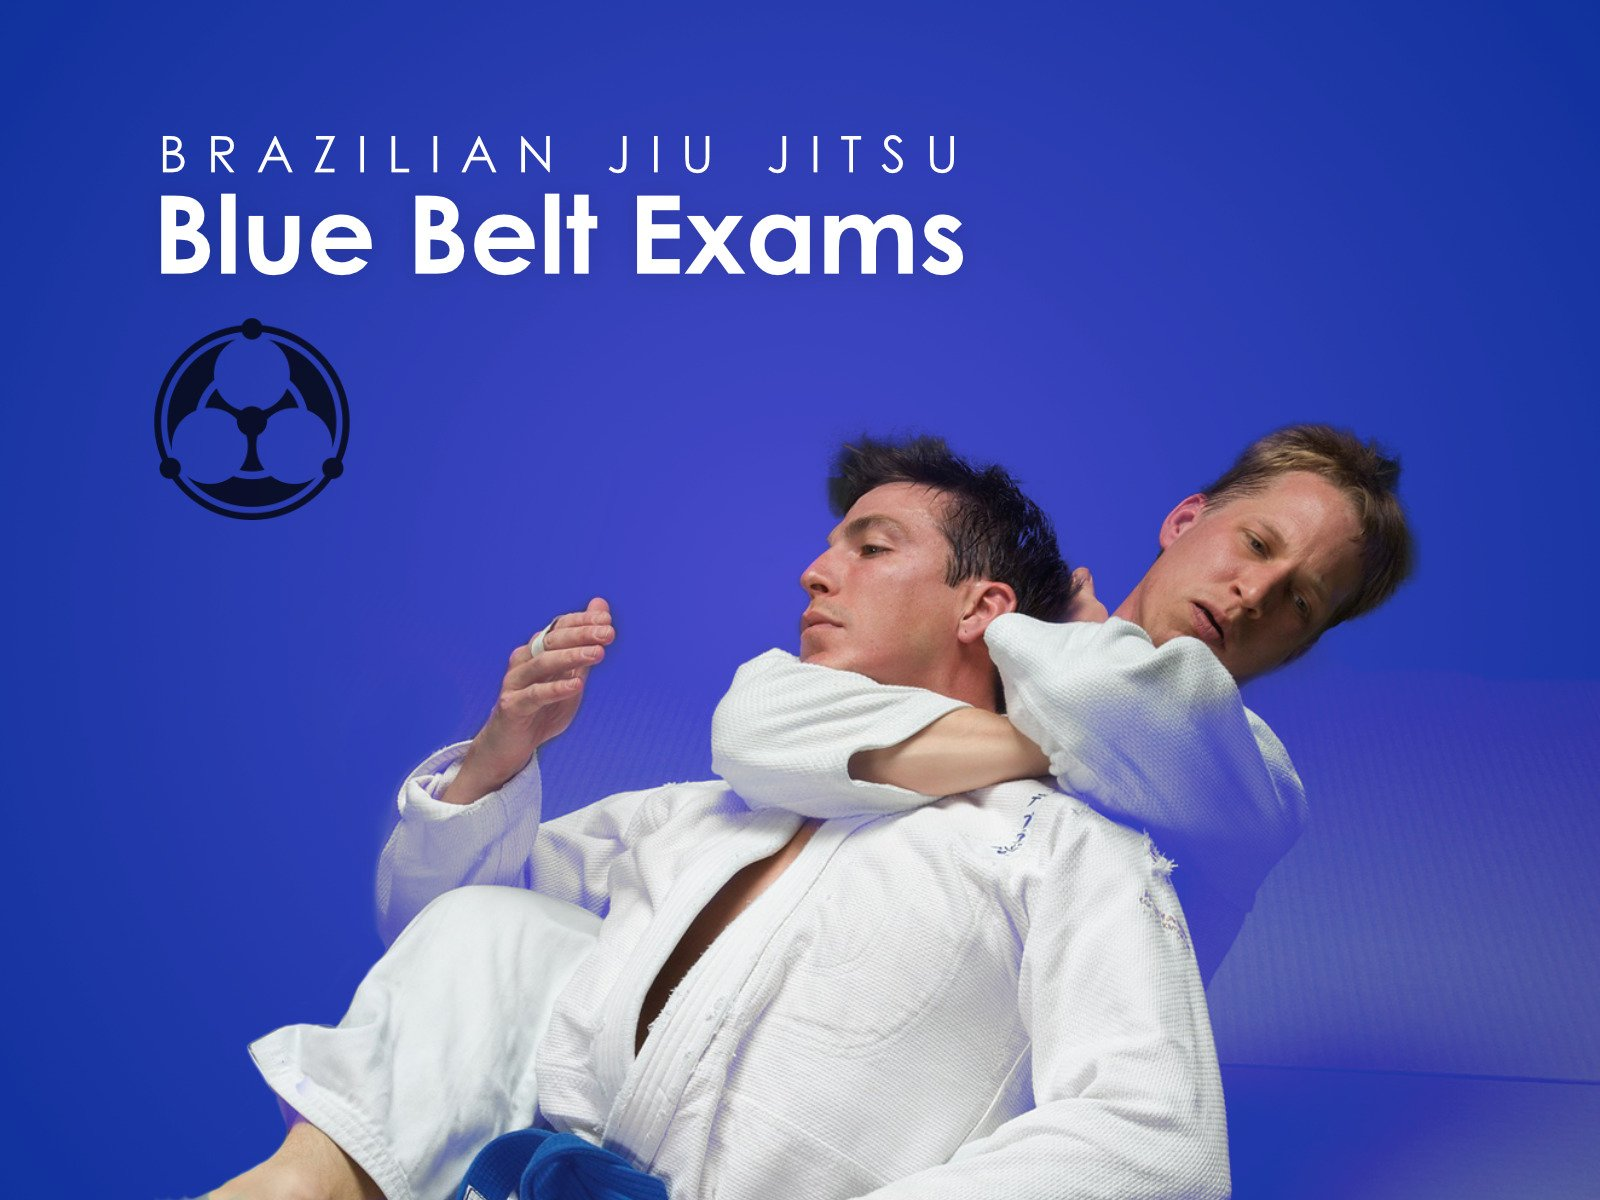 Brazilian Jiu Jitsu: Blue Belt Exams - Season 1